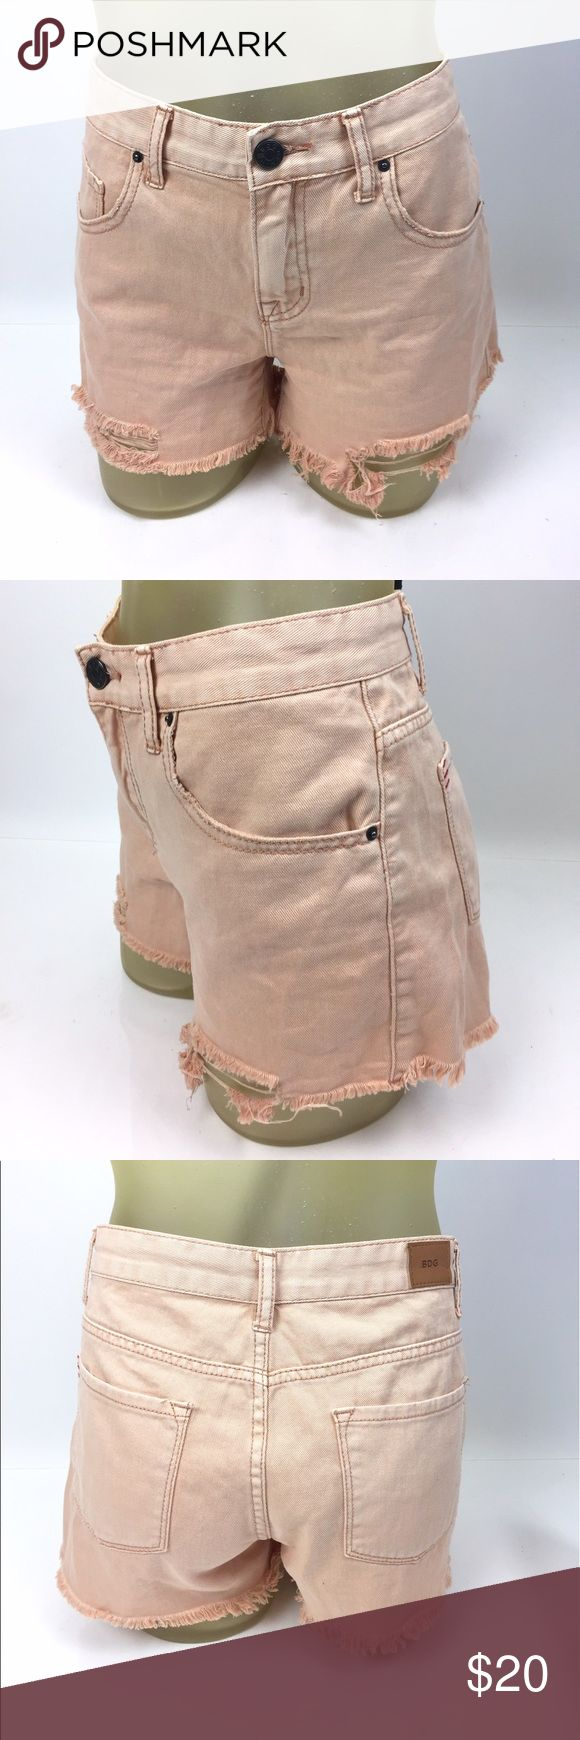 """BDG Mid Rise Freja Vintage Fit Cutoff Jean Shorts Peachy colored cut off jean short with distressing by BDG. 100% cotton. 32"""" waist, 9.5"""" mid rise, 3"""" inseam. Excellent preowned condition. A04040 Urban Outfitters Shorts Jean Shorts"""